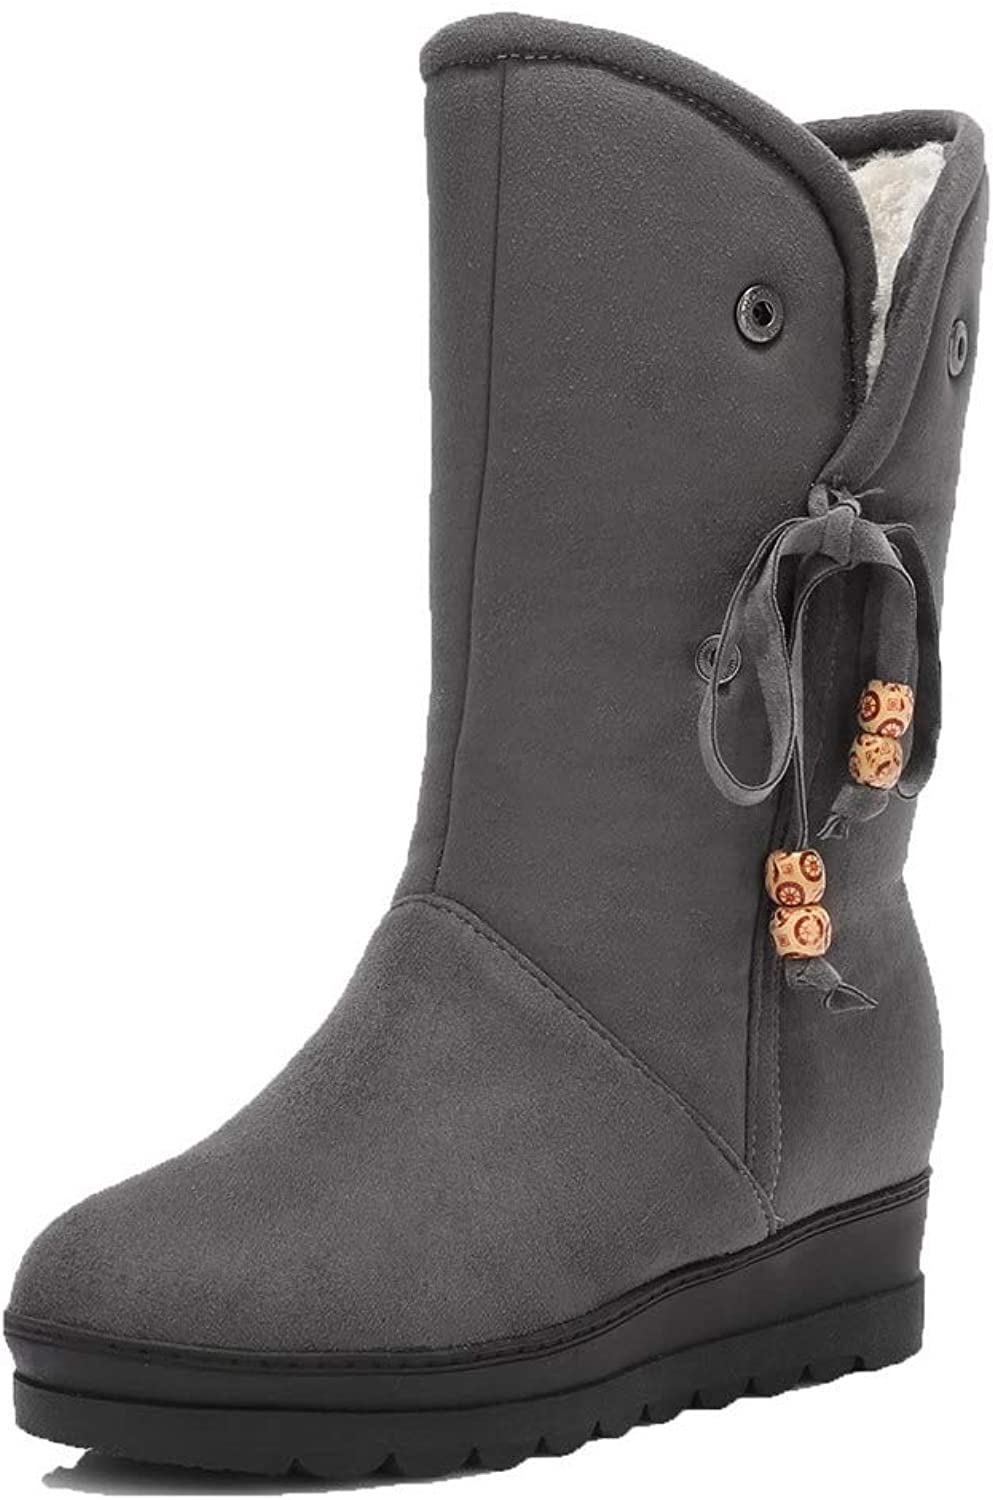 AmoonyFashion Women's Solid Low-Heels Round-Toe Imitated Suede Pull-On Boots, BUSXT120478